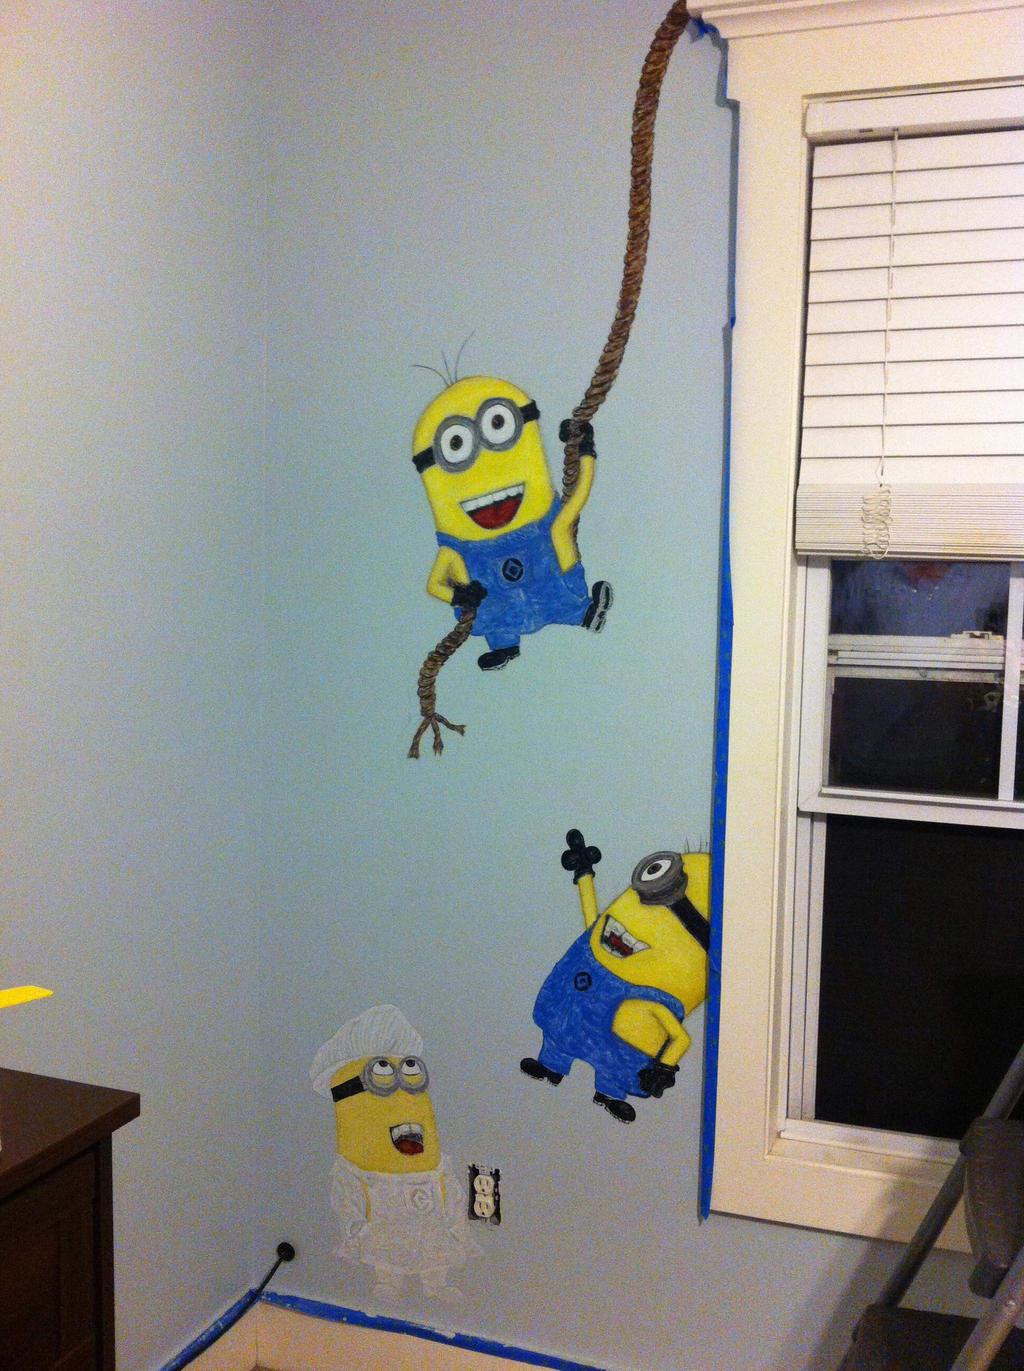 Minions left despicable me minions wall mural by delsiree on minions left despicable me minions wall mural by delsiree amipublicfo Images